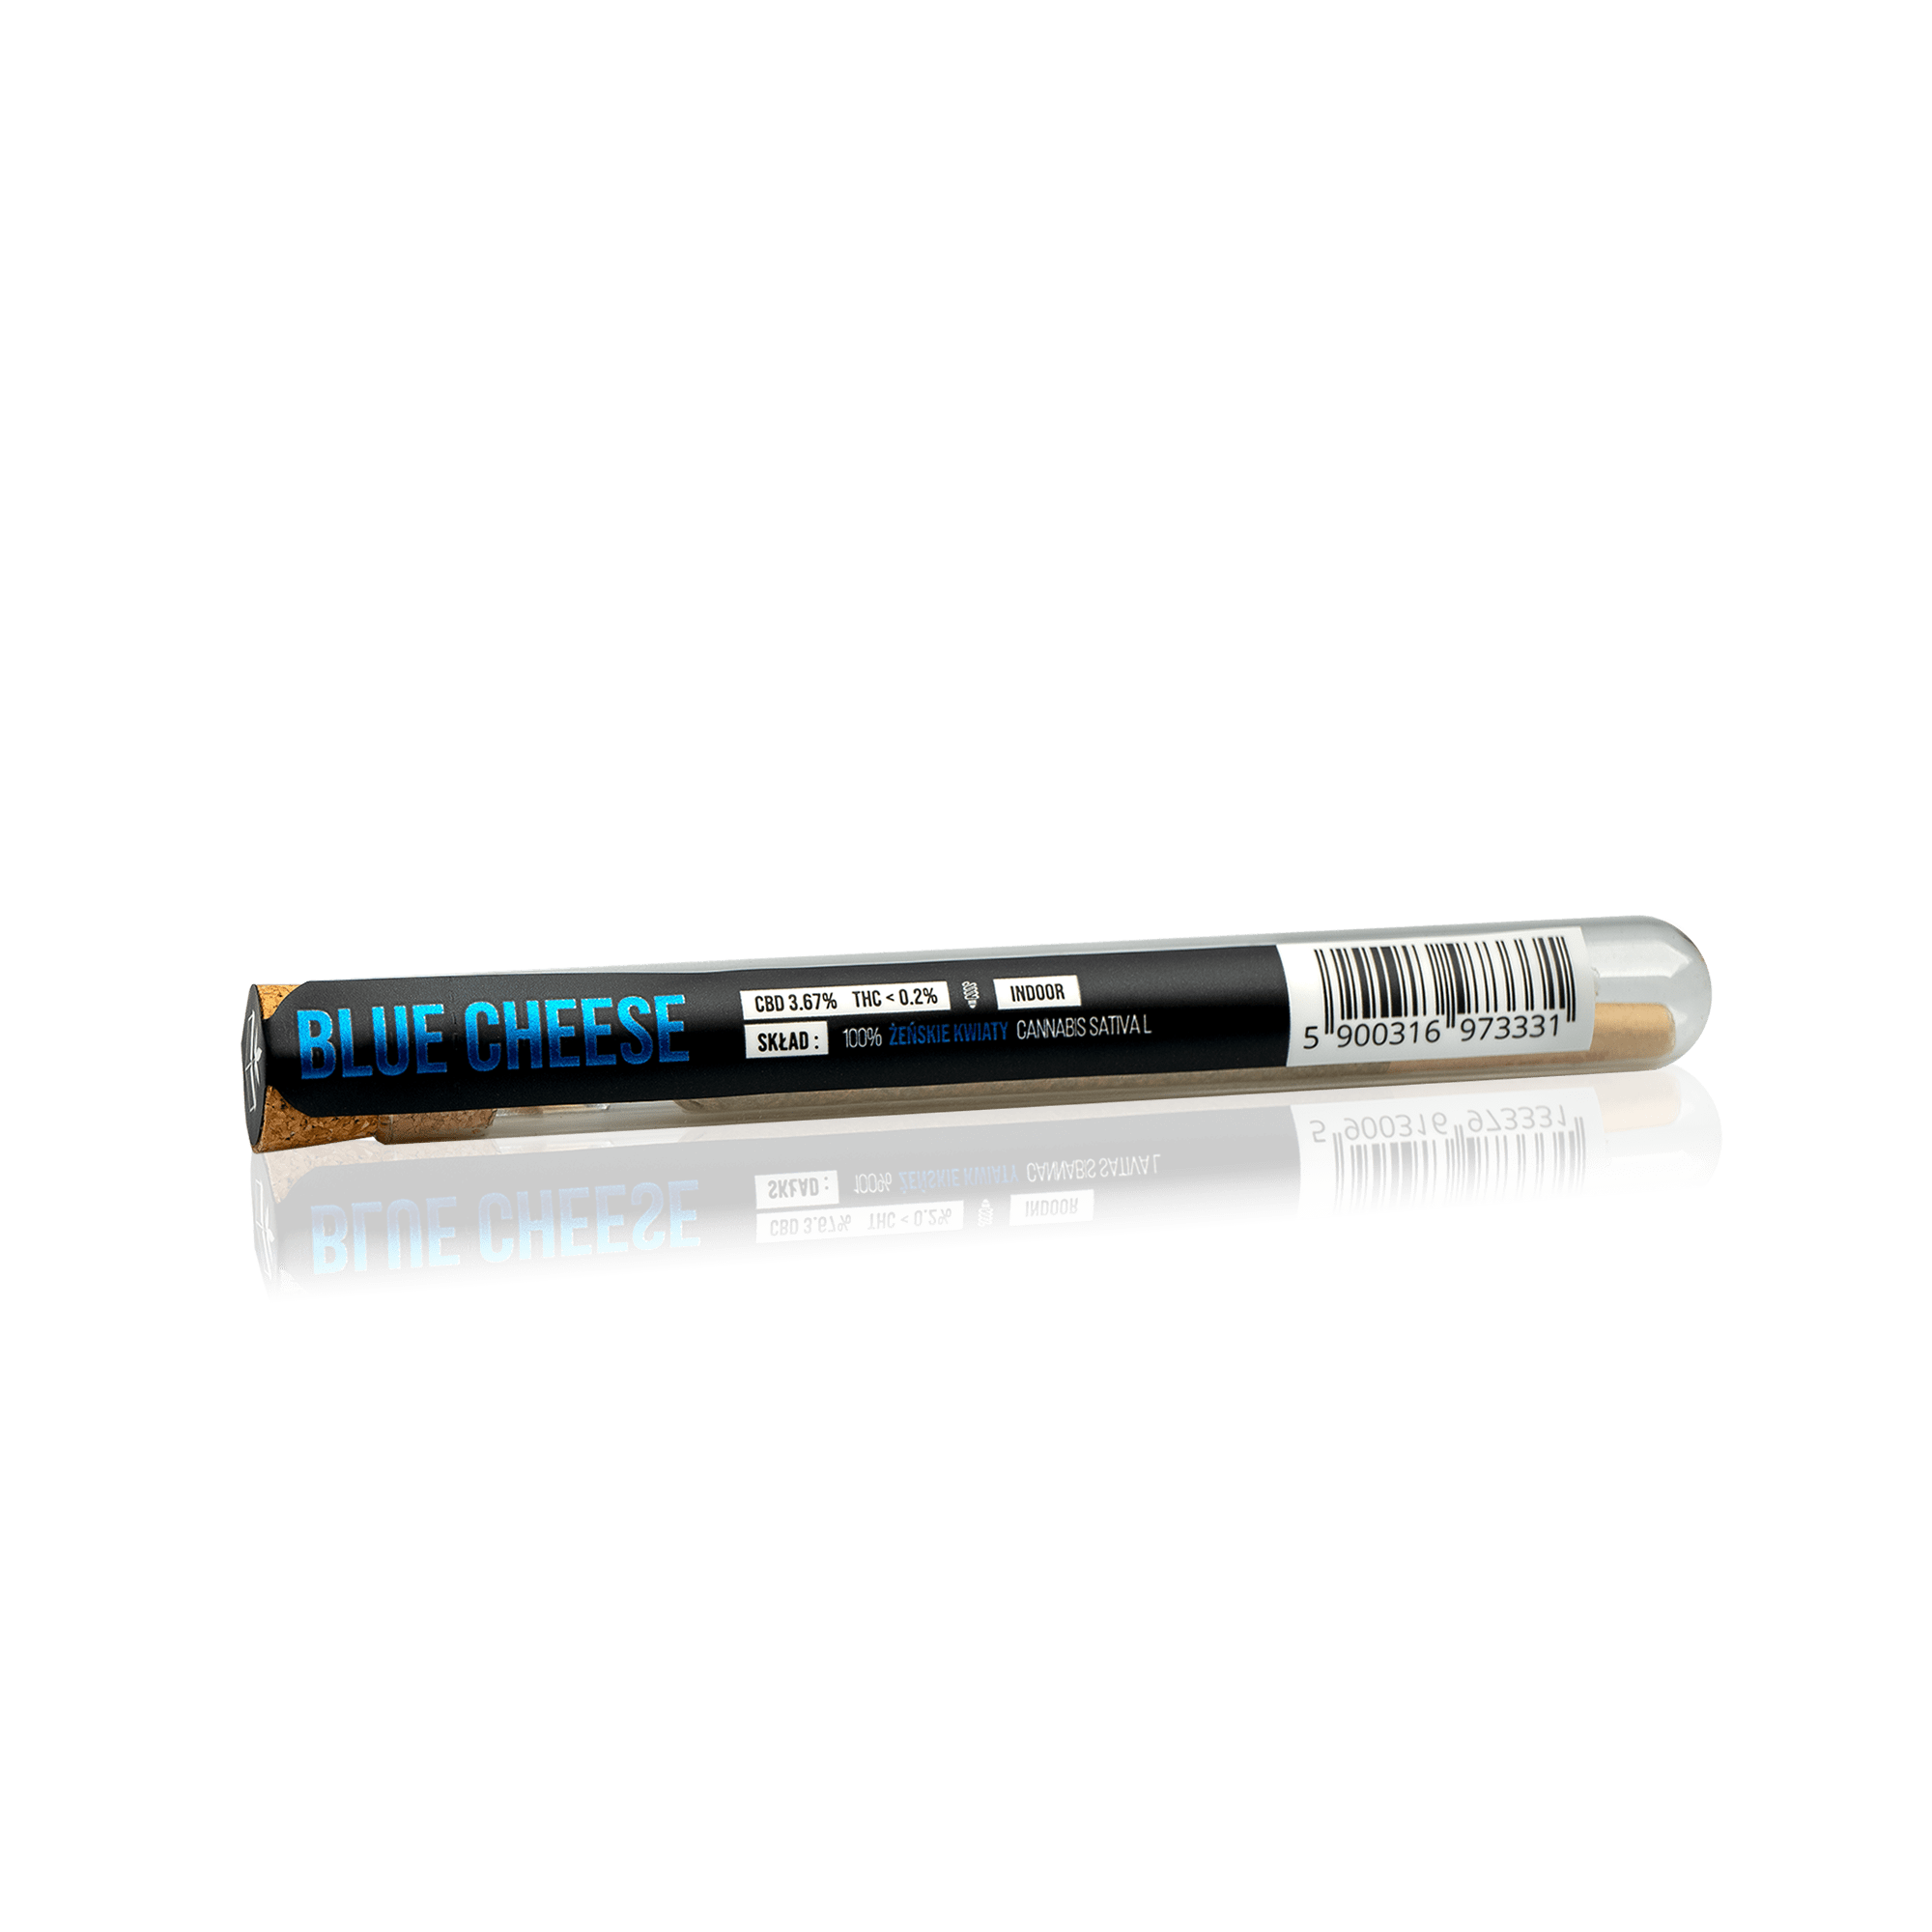 JOINT BOX Susz Konopny Pre-Roll BLUE CHEESE 3,67% CBD